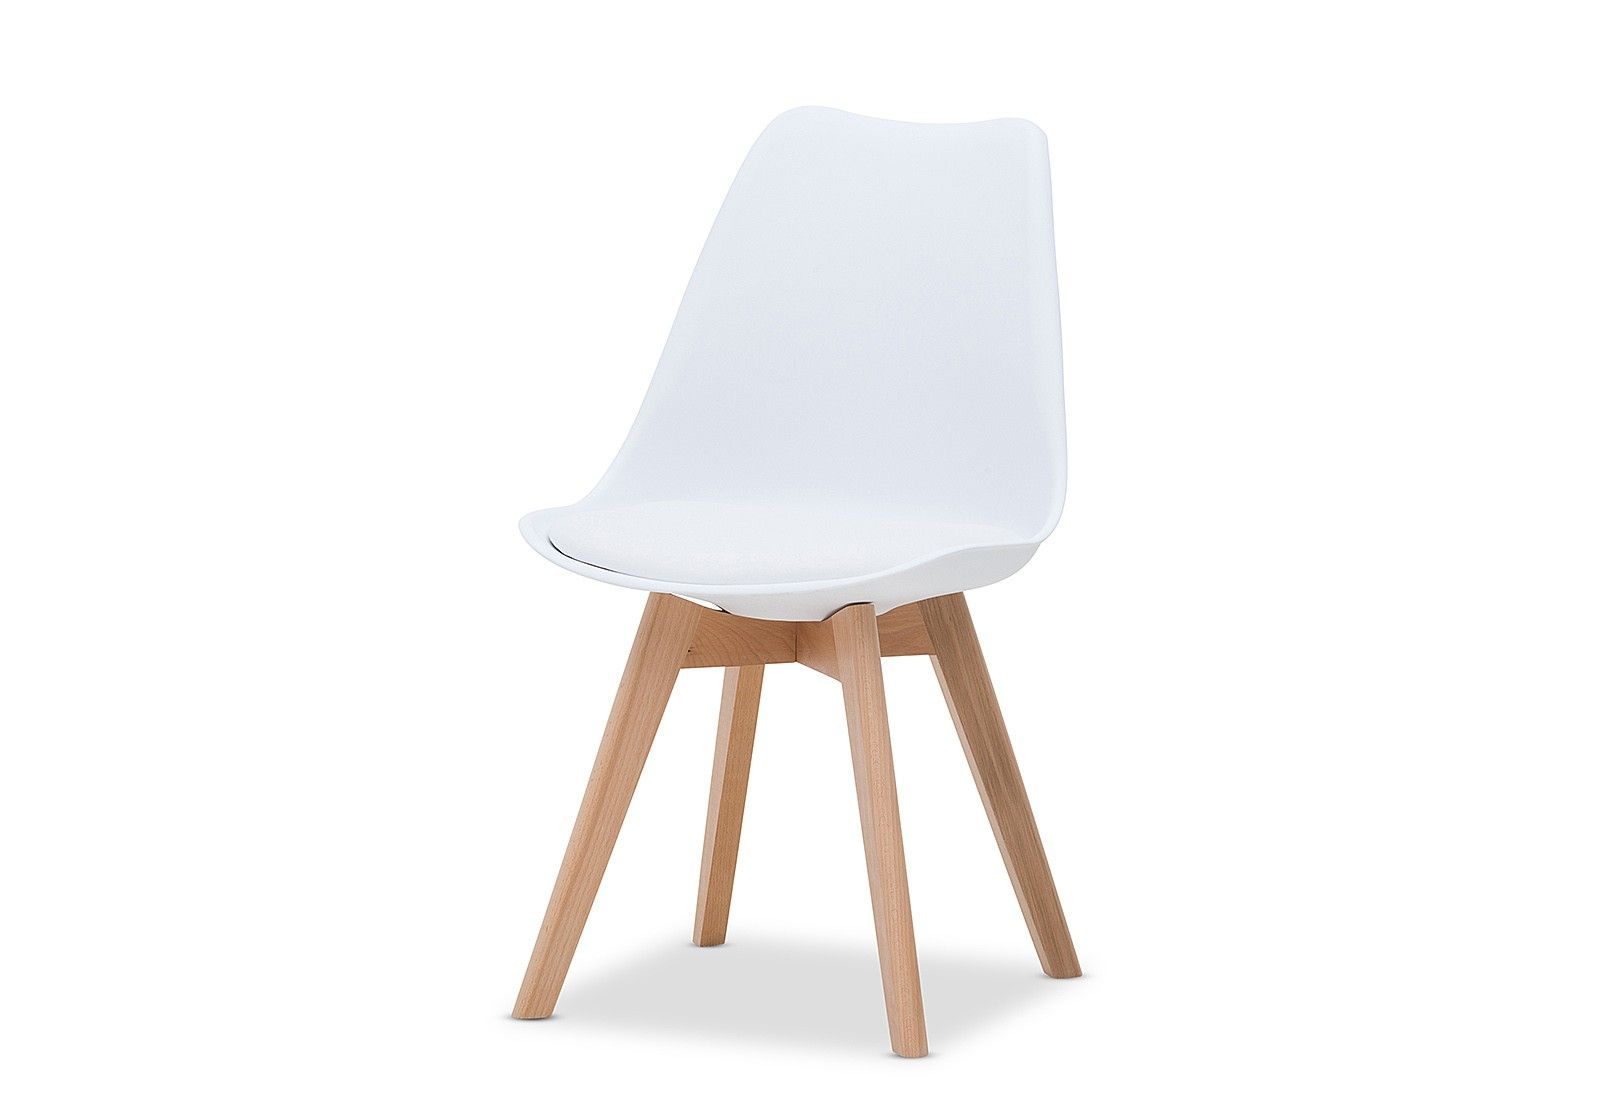 Otis Dining Chair Amart Furniture Chairs To Dine On